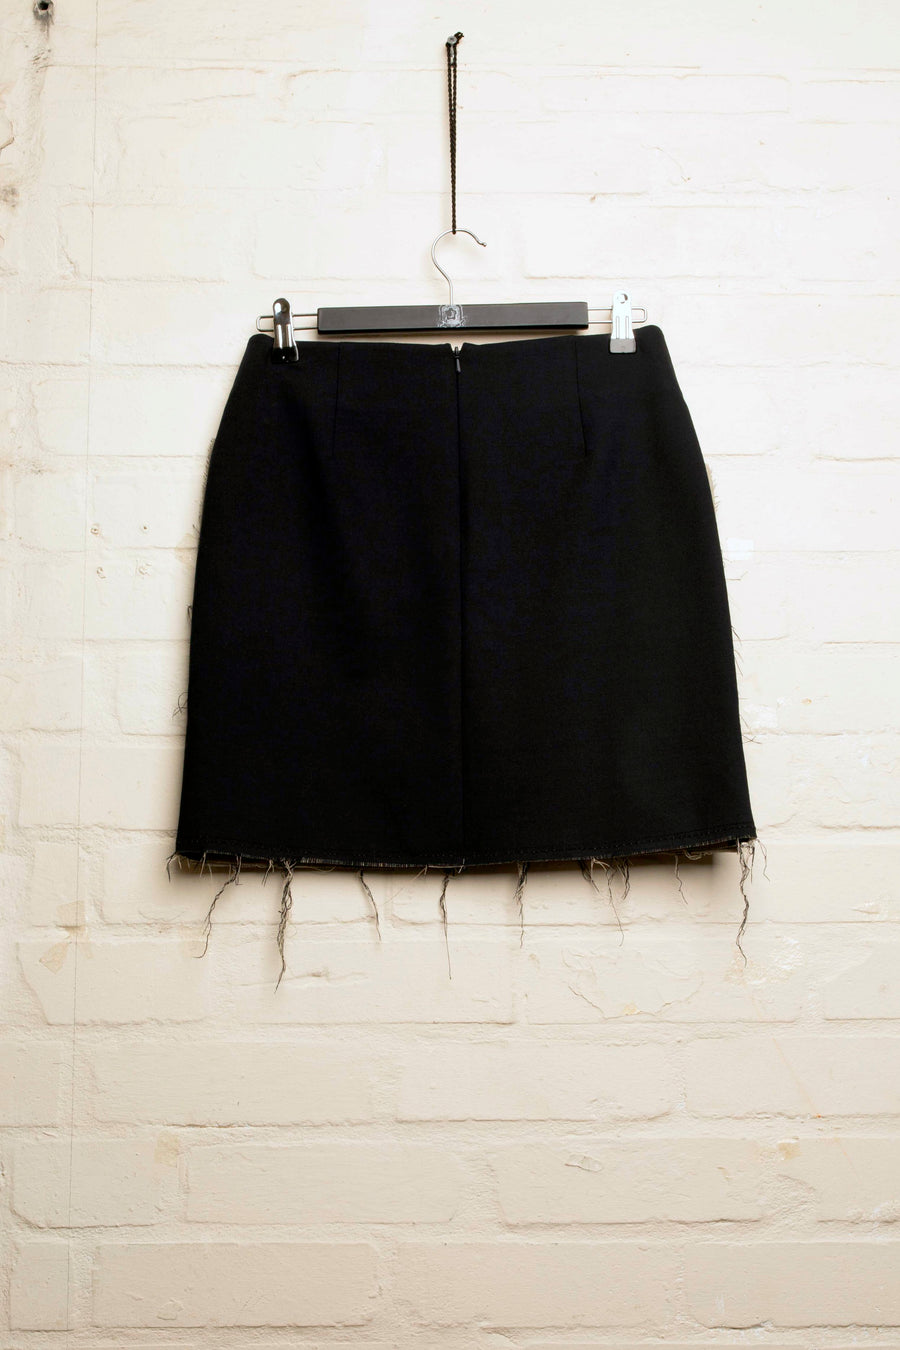 STULL – DOUBLE LAYERED MINI SKIRT